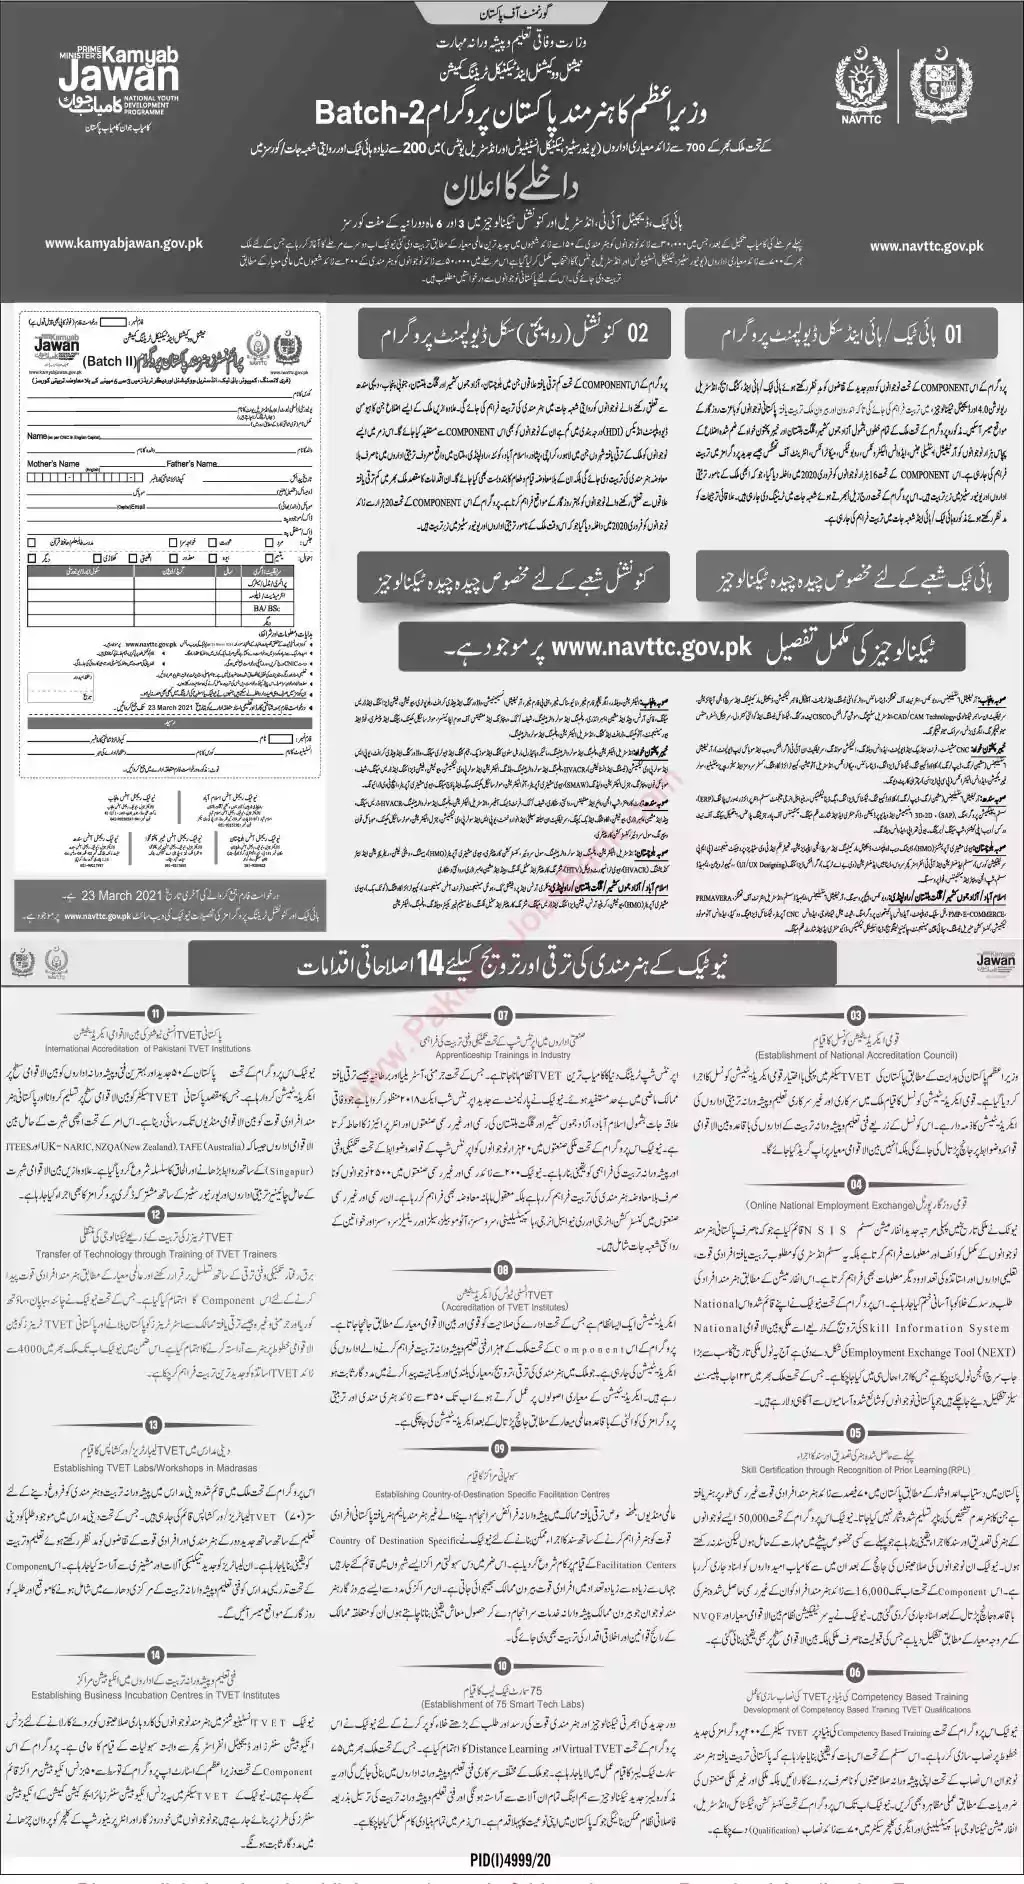 New Jobs in Pakistan Prime Minister Kamyab Jawan Hunarmand Pakistan Program Batch 2  2021 | Download Application Form